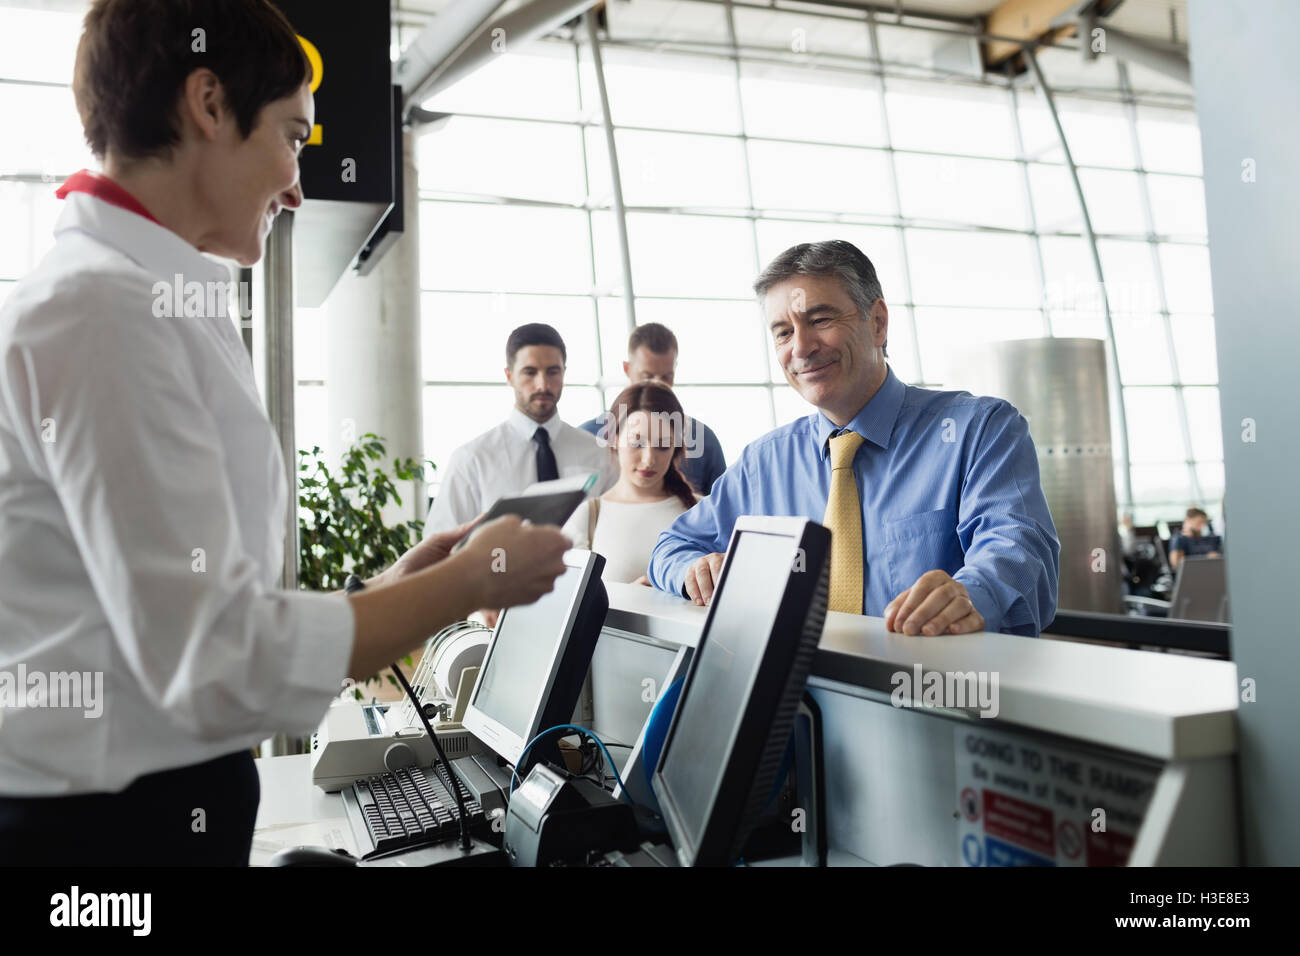 airline check in attendant handing boarding pass to passenger stock photo royalty free image. Black Bedroom Furniture Sets. Home Design Ideas